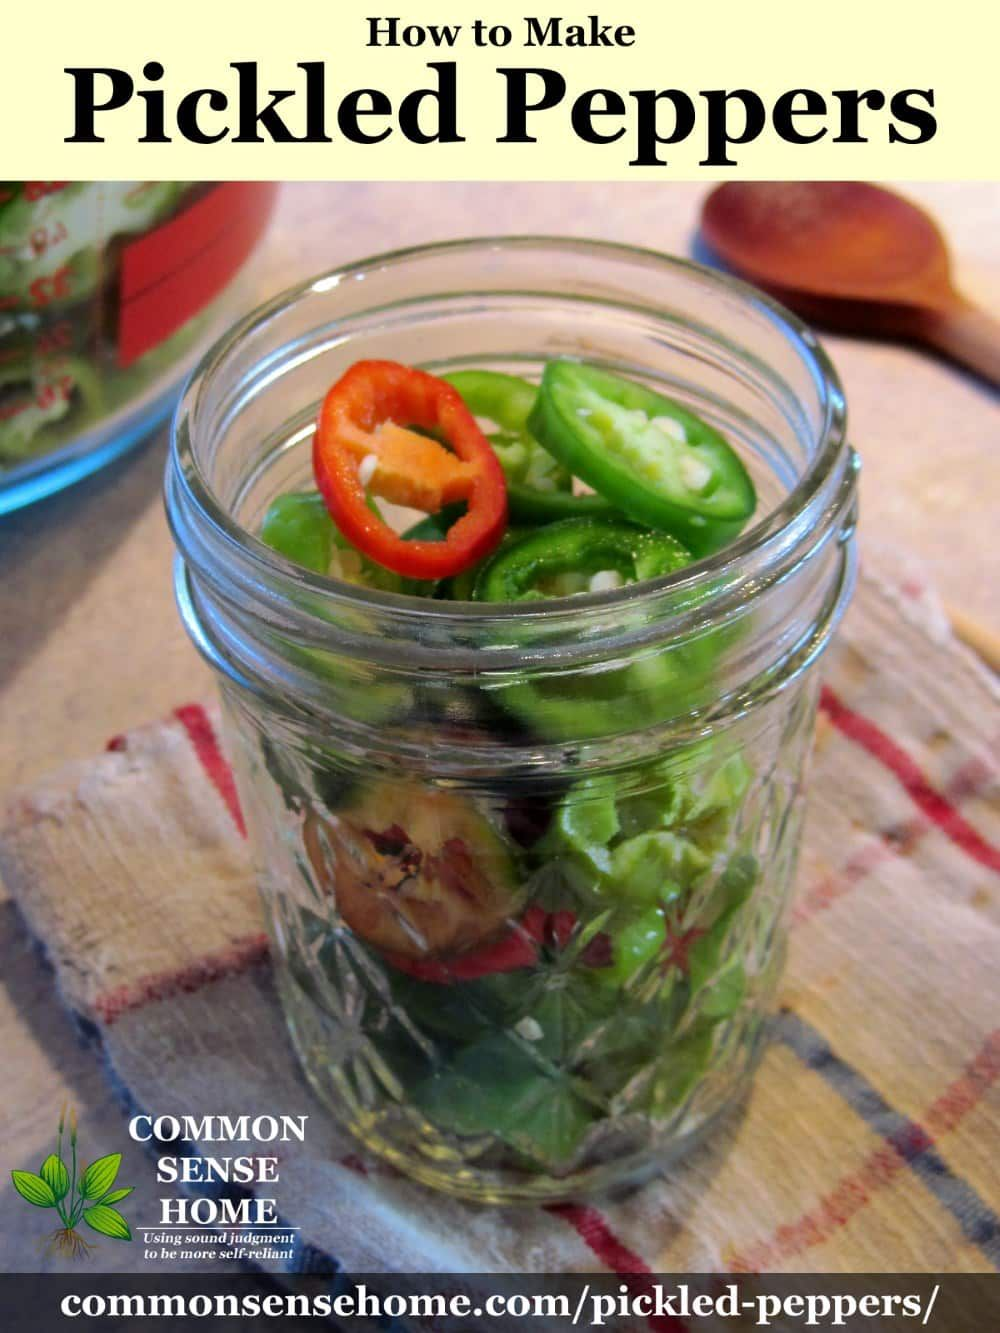 Pickled Peppers Recipe For Canning Just Four Ingredients Recipe Stuffed Peppers Canning Recipes Stuffed Hot Peppers